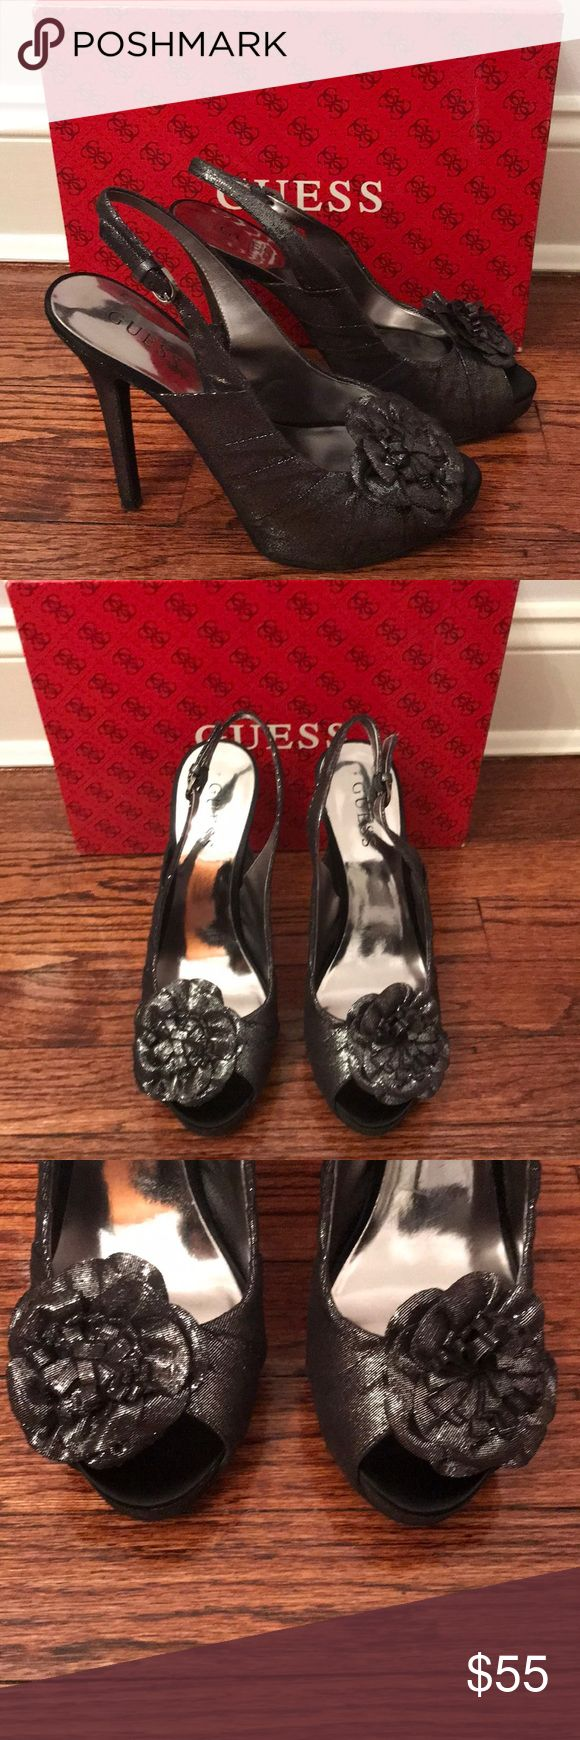 Guess Shoes Mint condition heels. Only worn a couple of times. No scratches or signs of wear. Pretty flower detail. Box included. Guess Shoes Heels